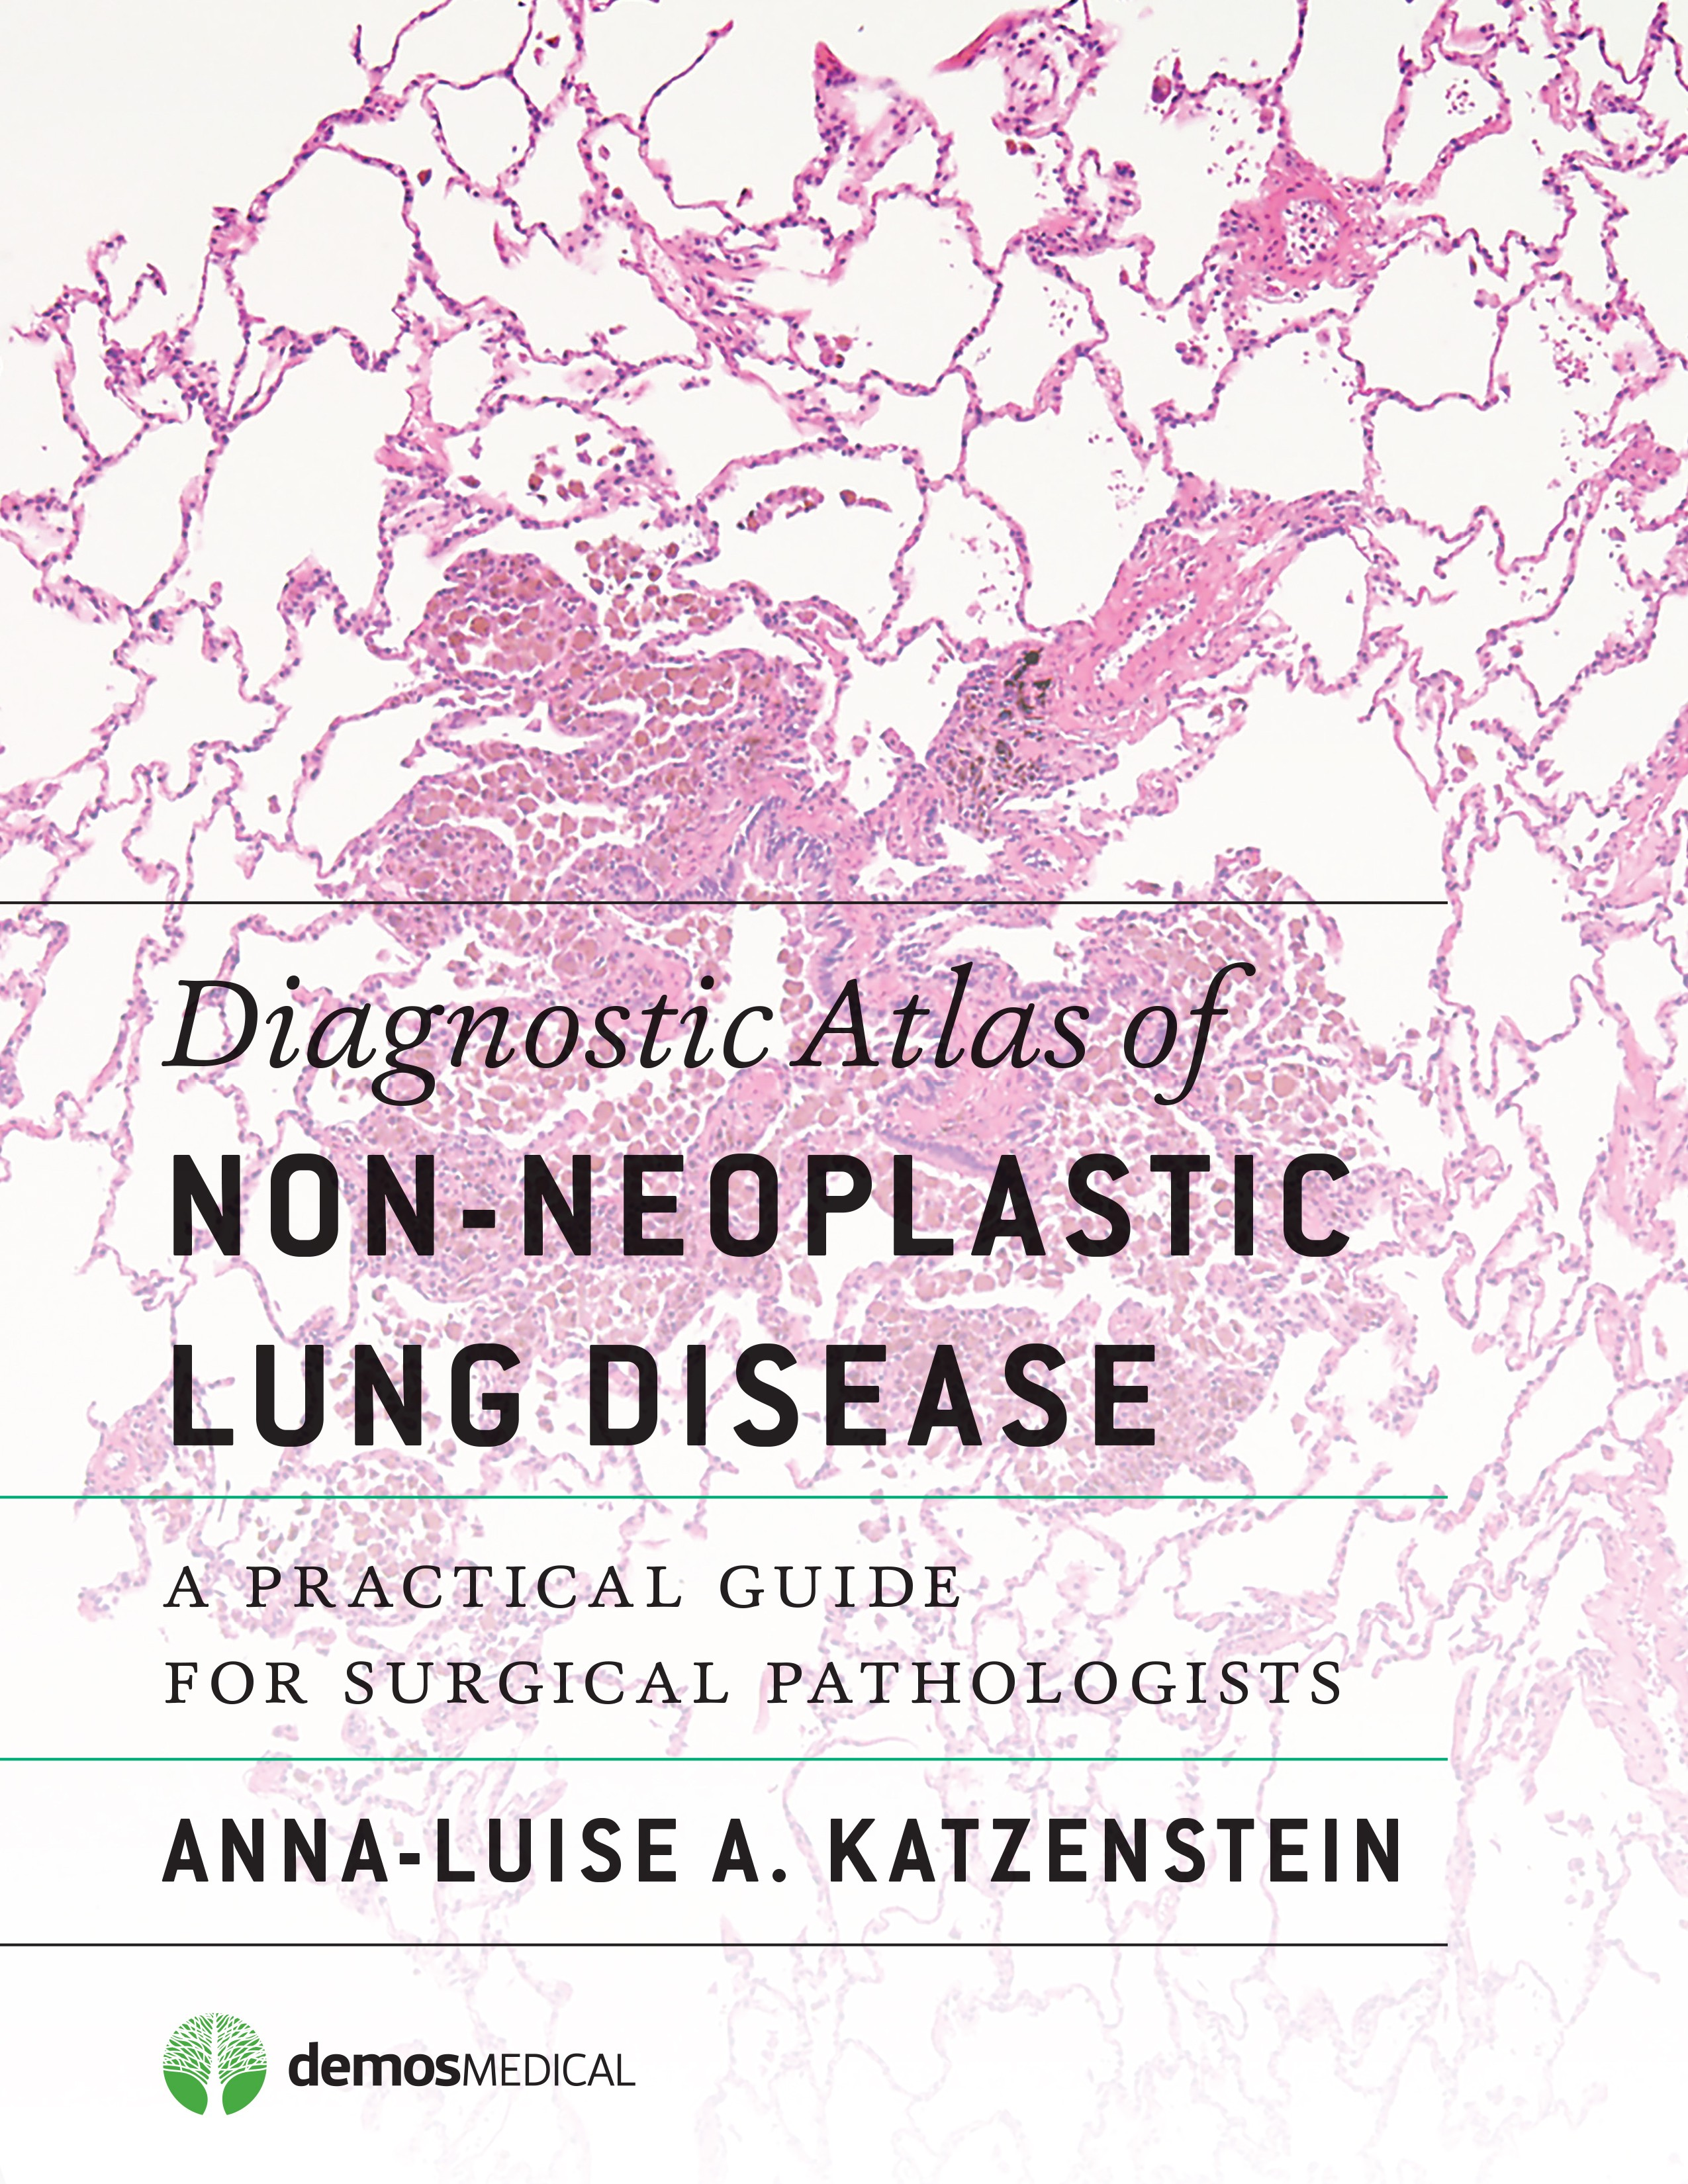 Diagnostic Atlas of Non-Neoplastic Lung Disease- A Practical Guide for Surgical Pathologists